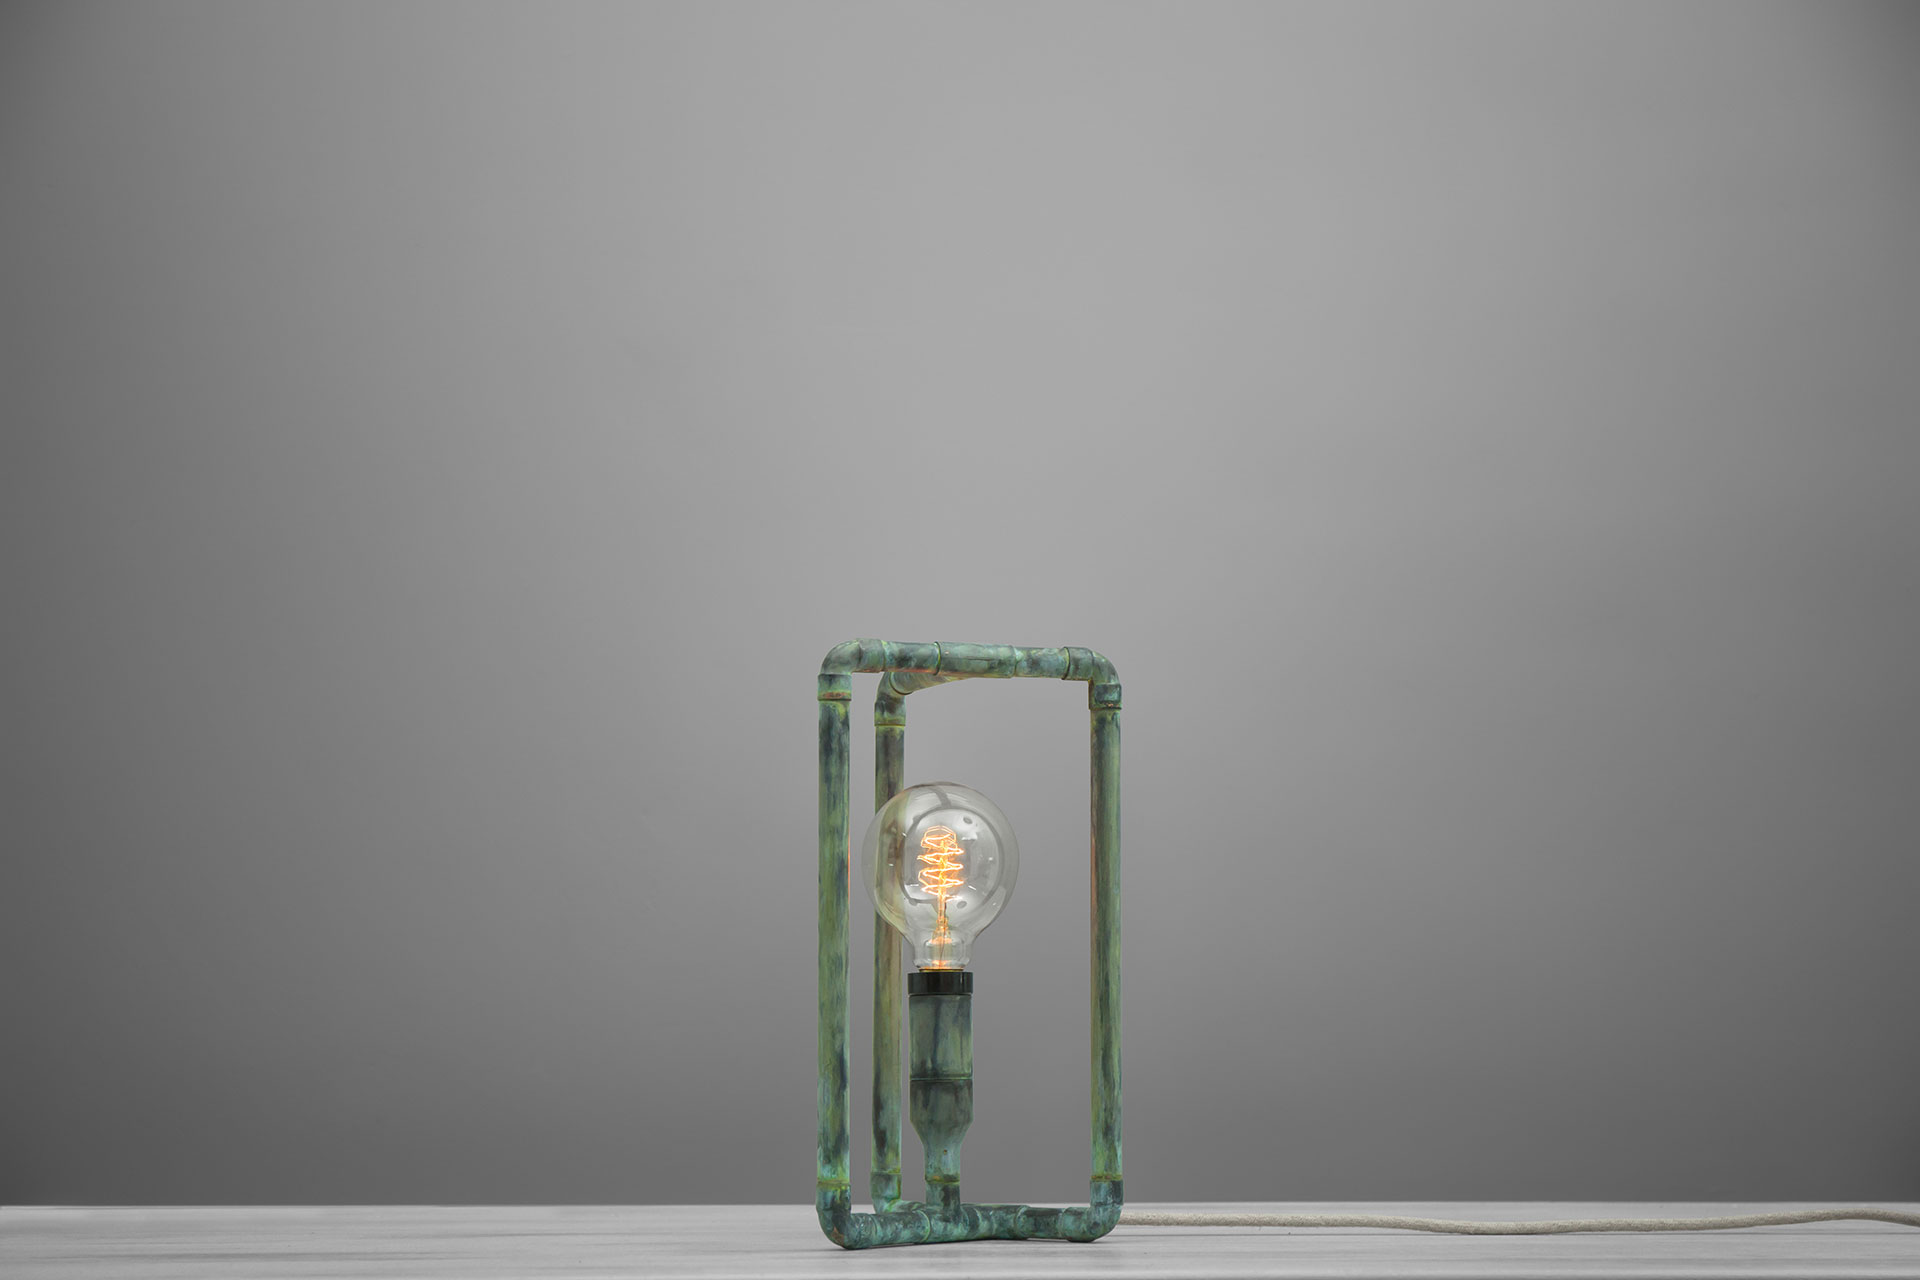 Loft style desk lamp in natural green patina with creative touch dimmer and vintage Edison bulb